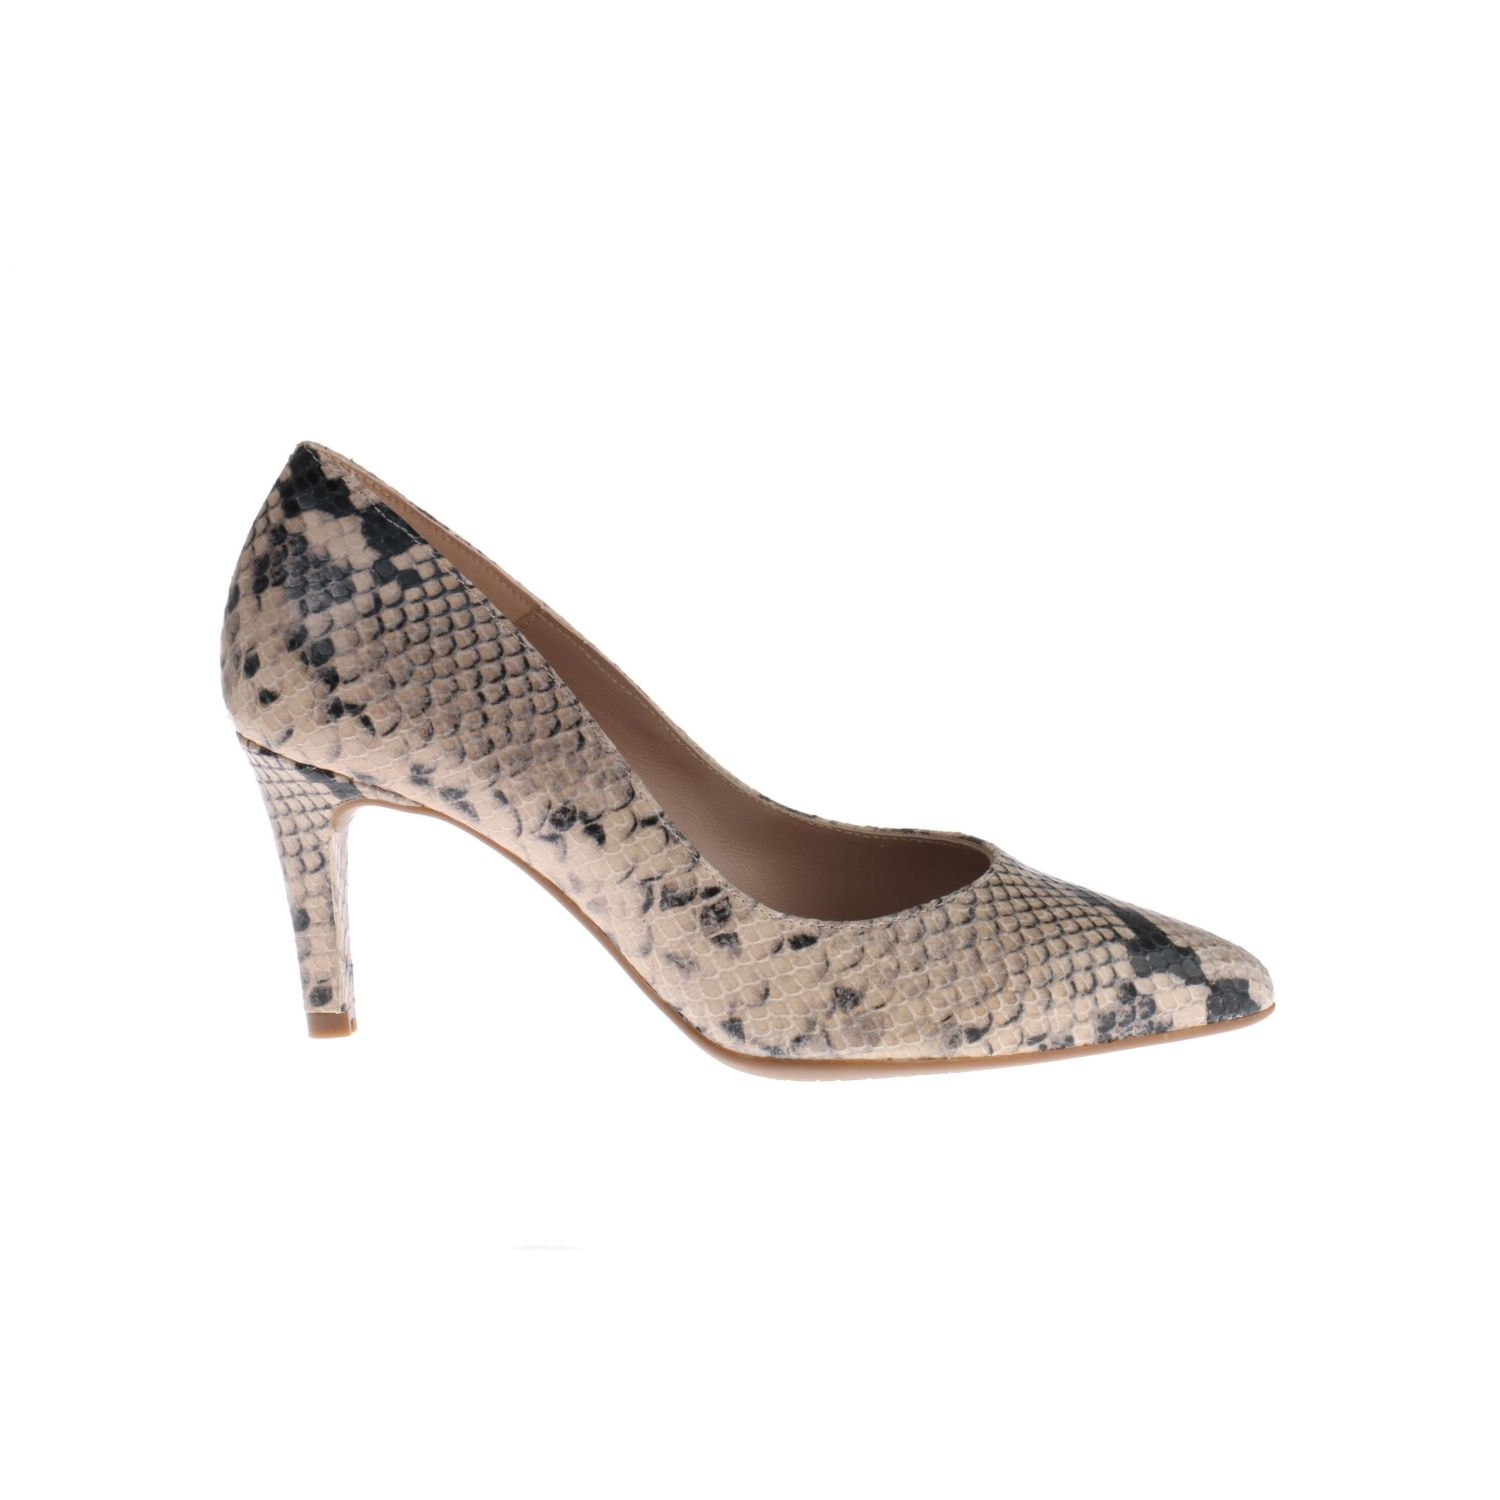 Catwalk Madele Anaconda Pumps